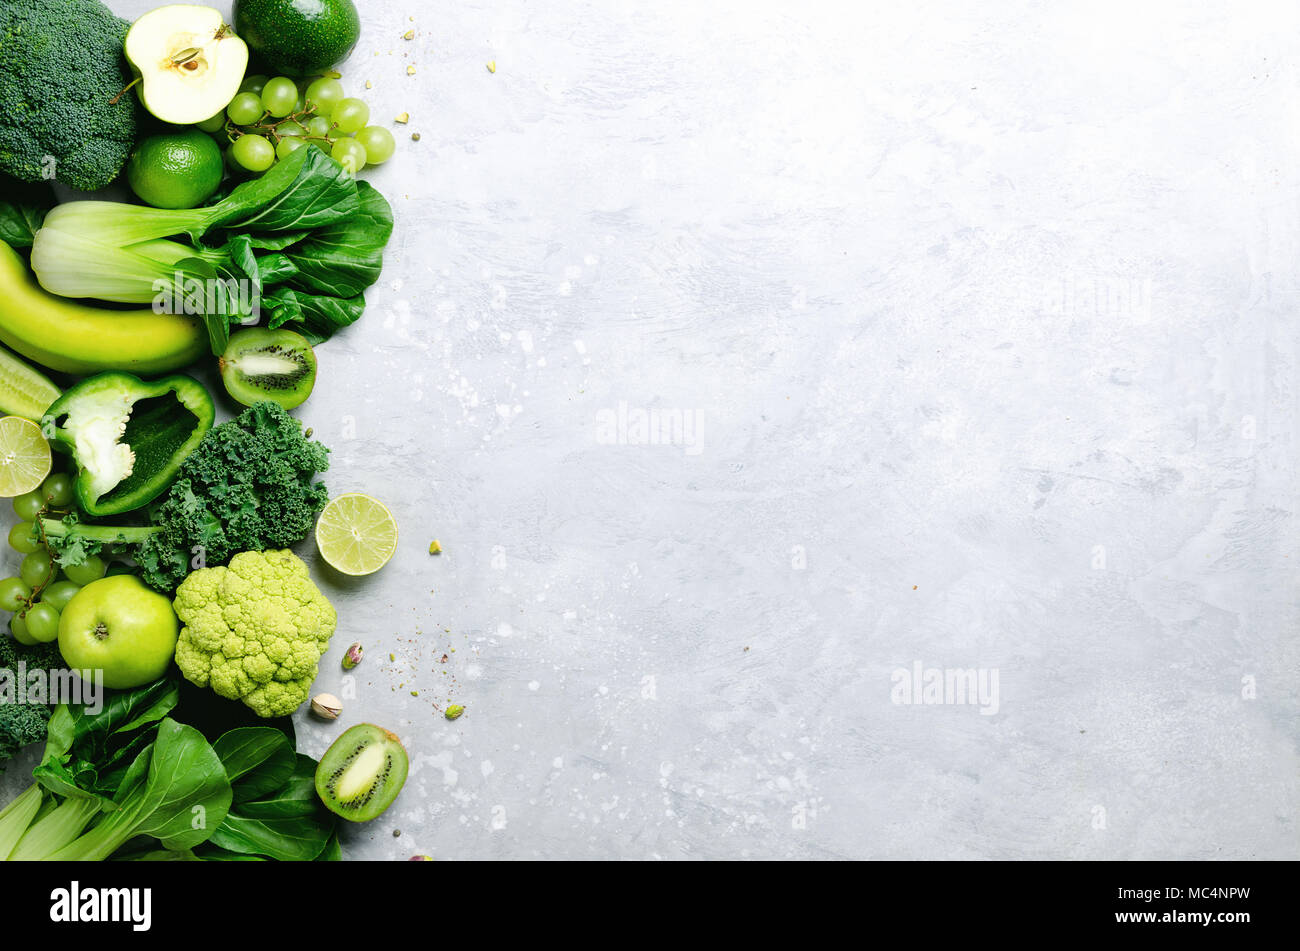 Organic green vegetables and fruits on grey background. Copy space, flat lay, top view. Green apple, lettuce, zucchini, cucumber, avocado, kale, lime, kiwi, grapes, banana, broccoli - Stock Image